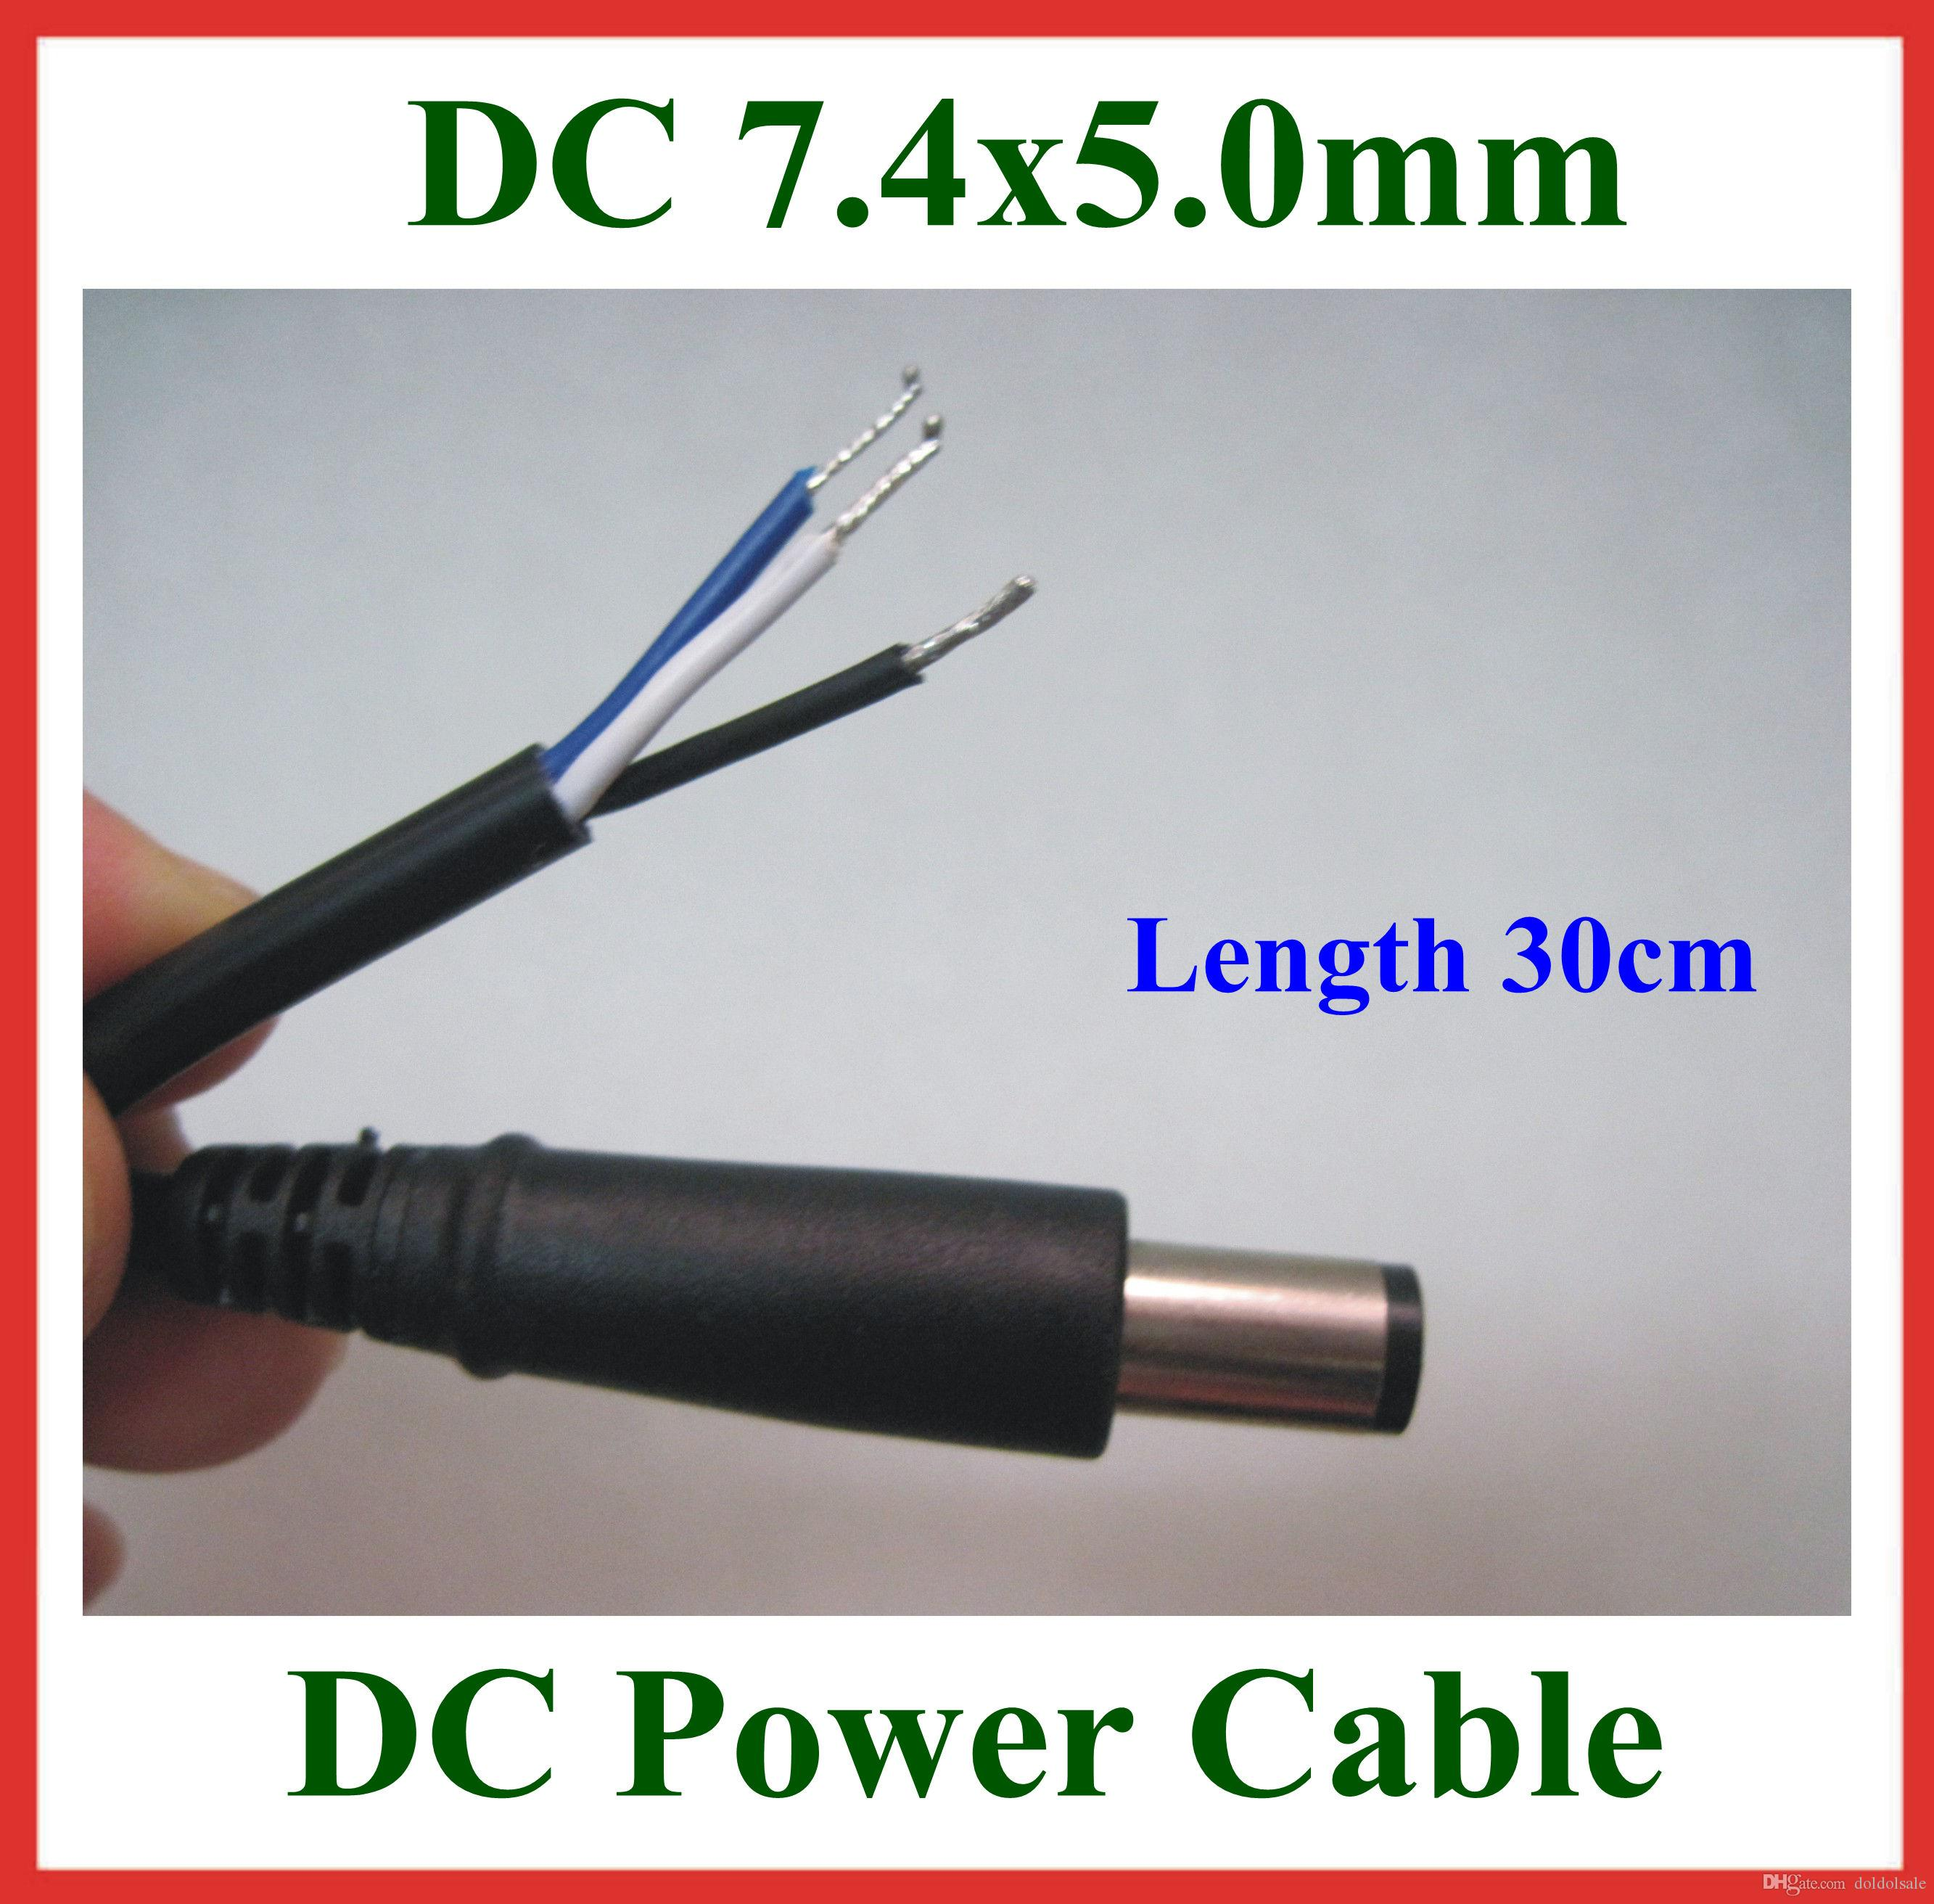 2pcs dc tip plug 7 4 5 0mm 7 4x5 0mm dc power dc tip plug 7 4*5 0mm 7 4x5 0mm dc power supply cable with pin wiring diagram for hp laptop charger at love-stories.co